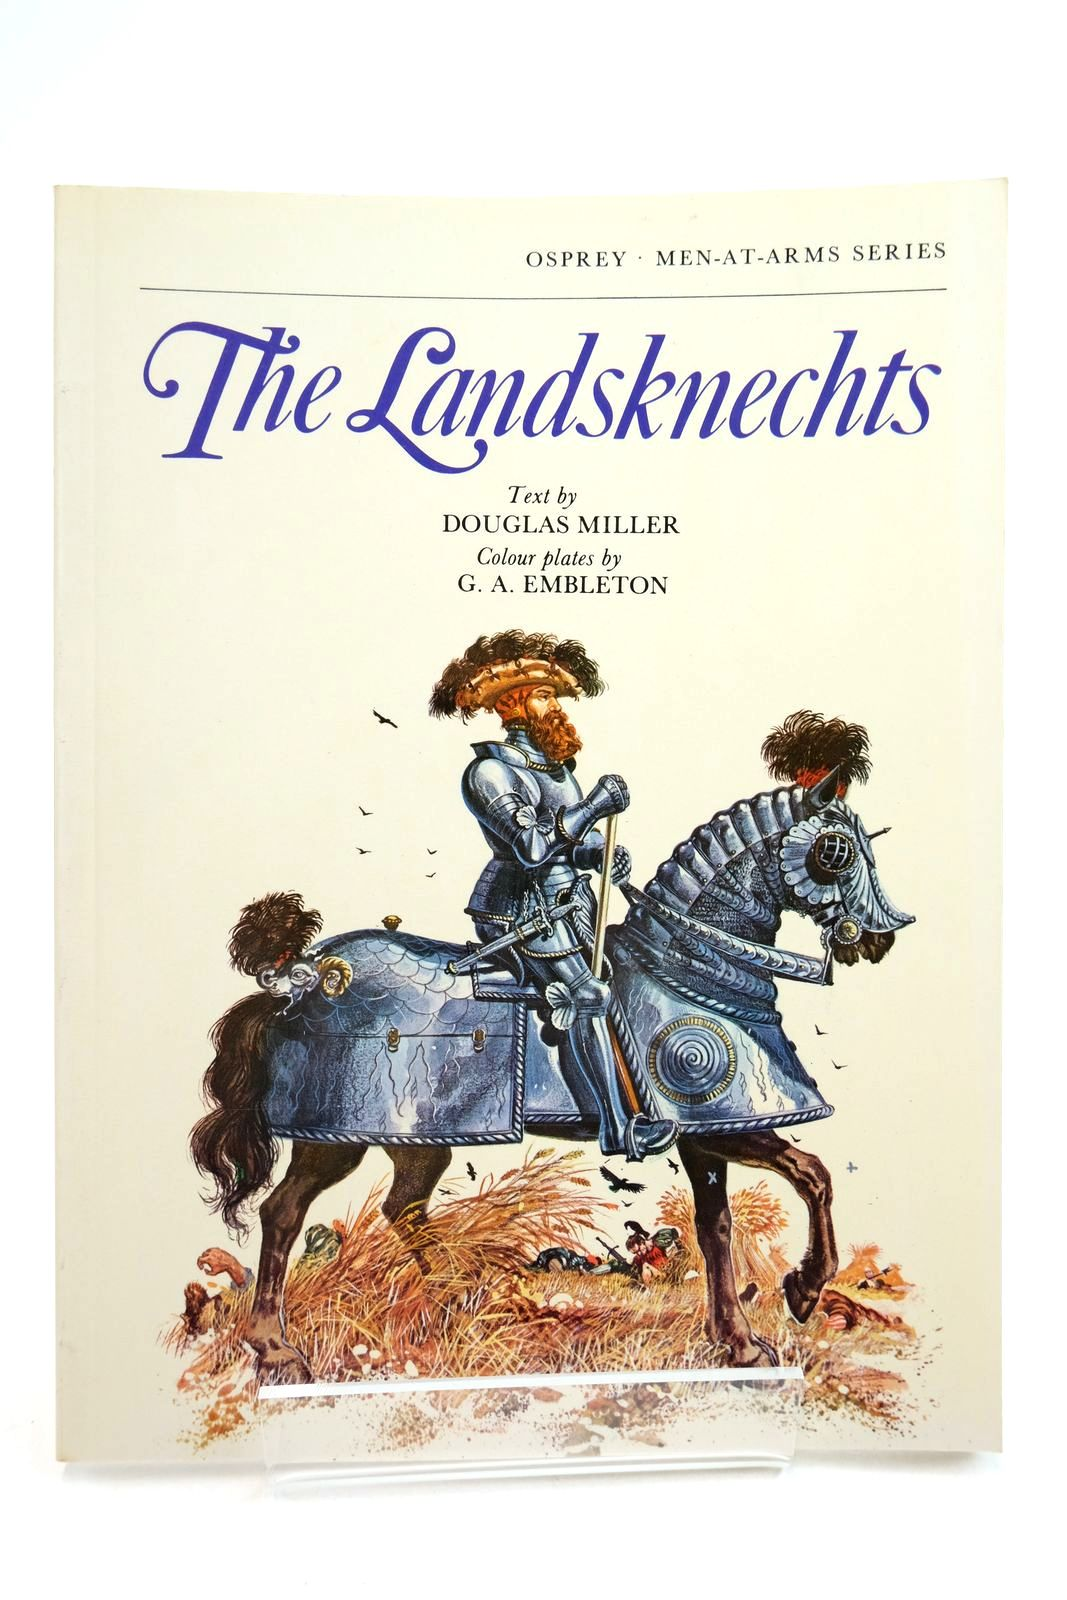 Photo of THE LANDSKNECHTS (MEN-AT-ARMS) written by Miller, Douglas illustrated by Embleton, G.A. published by Osprey Publishing (STOCK CODE: 2134741)  for sale by Stella & Rose's Books